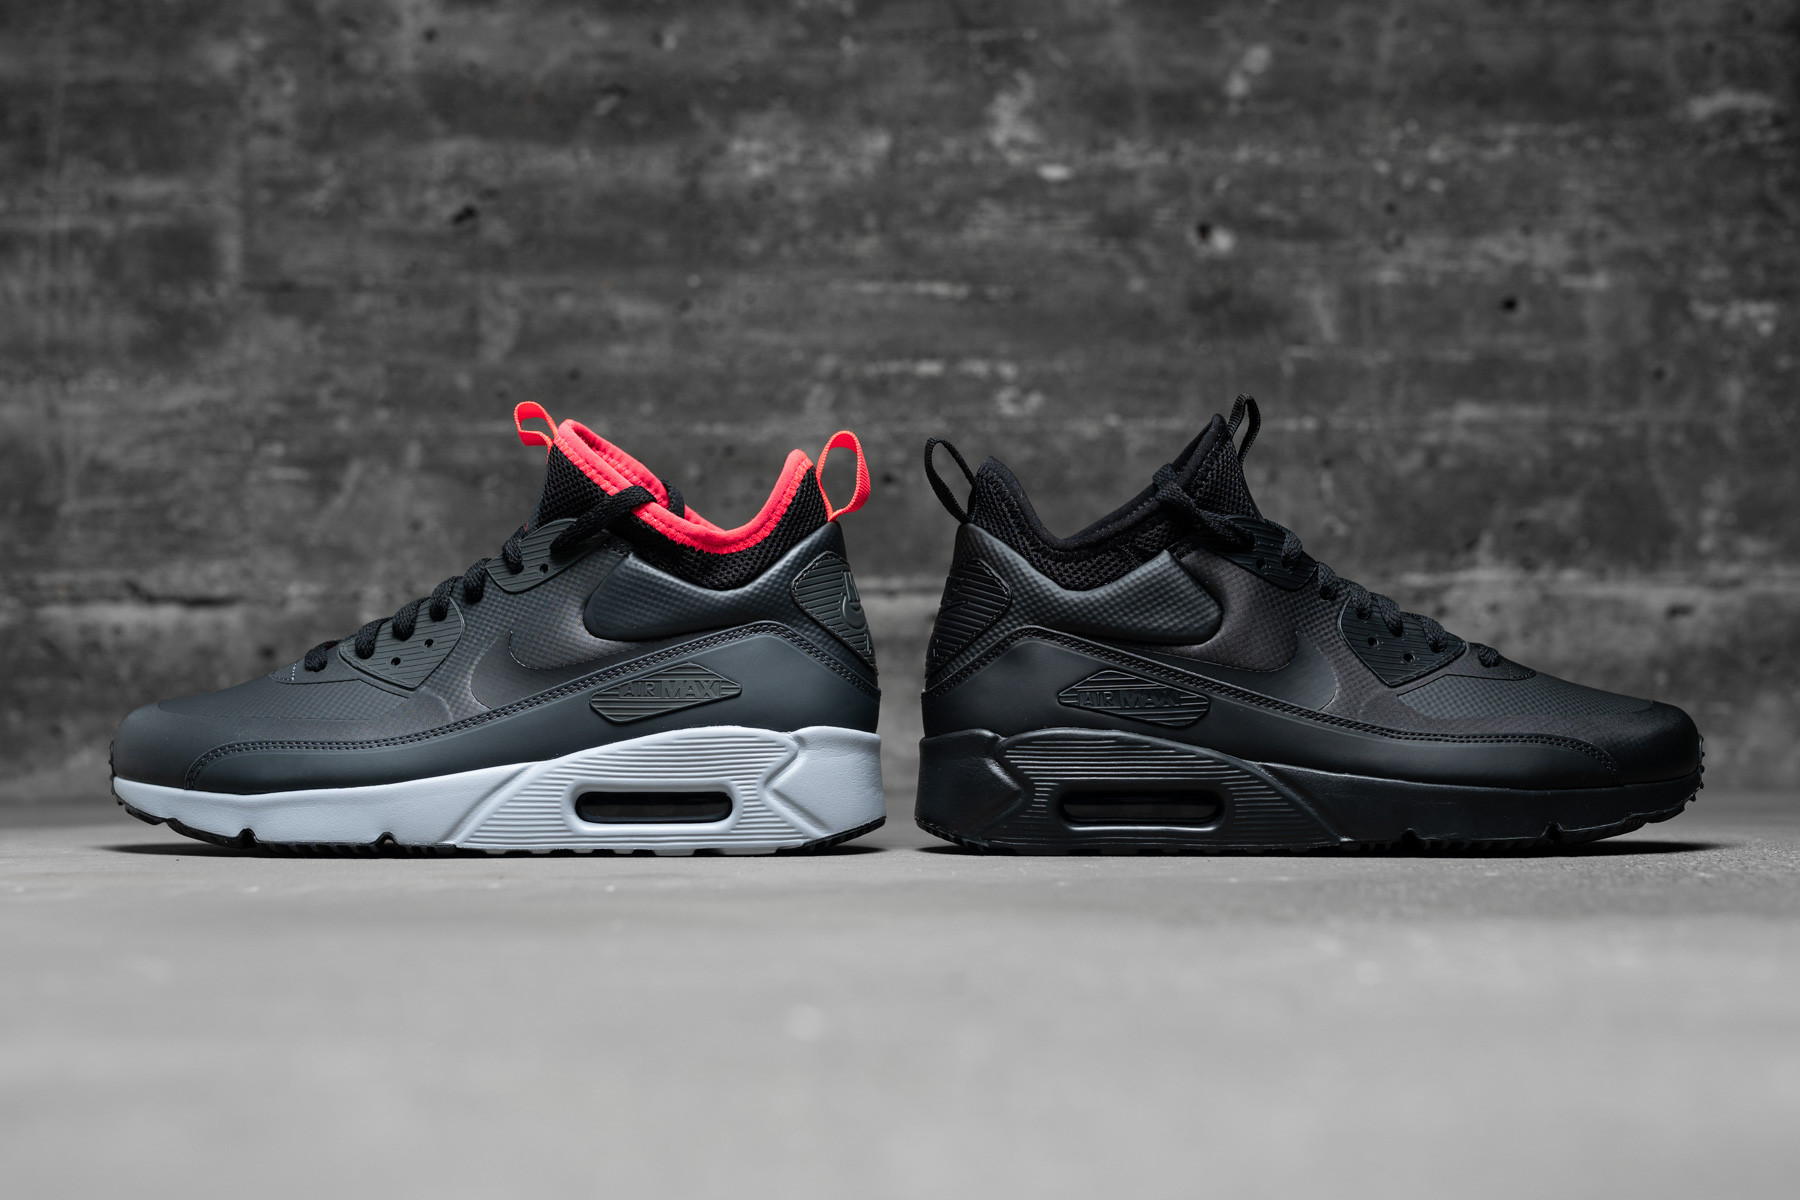 official photos c0c4e ab076 Nike Air Max 90 Ultra Mid Winter - Sneaker.no